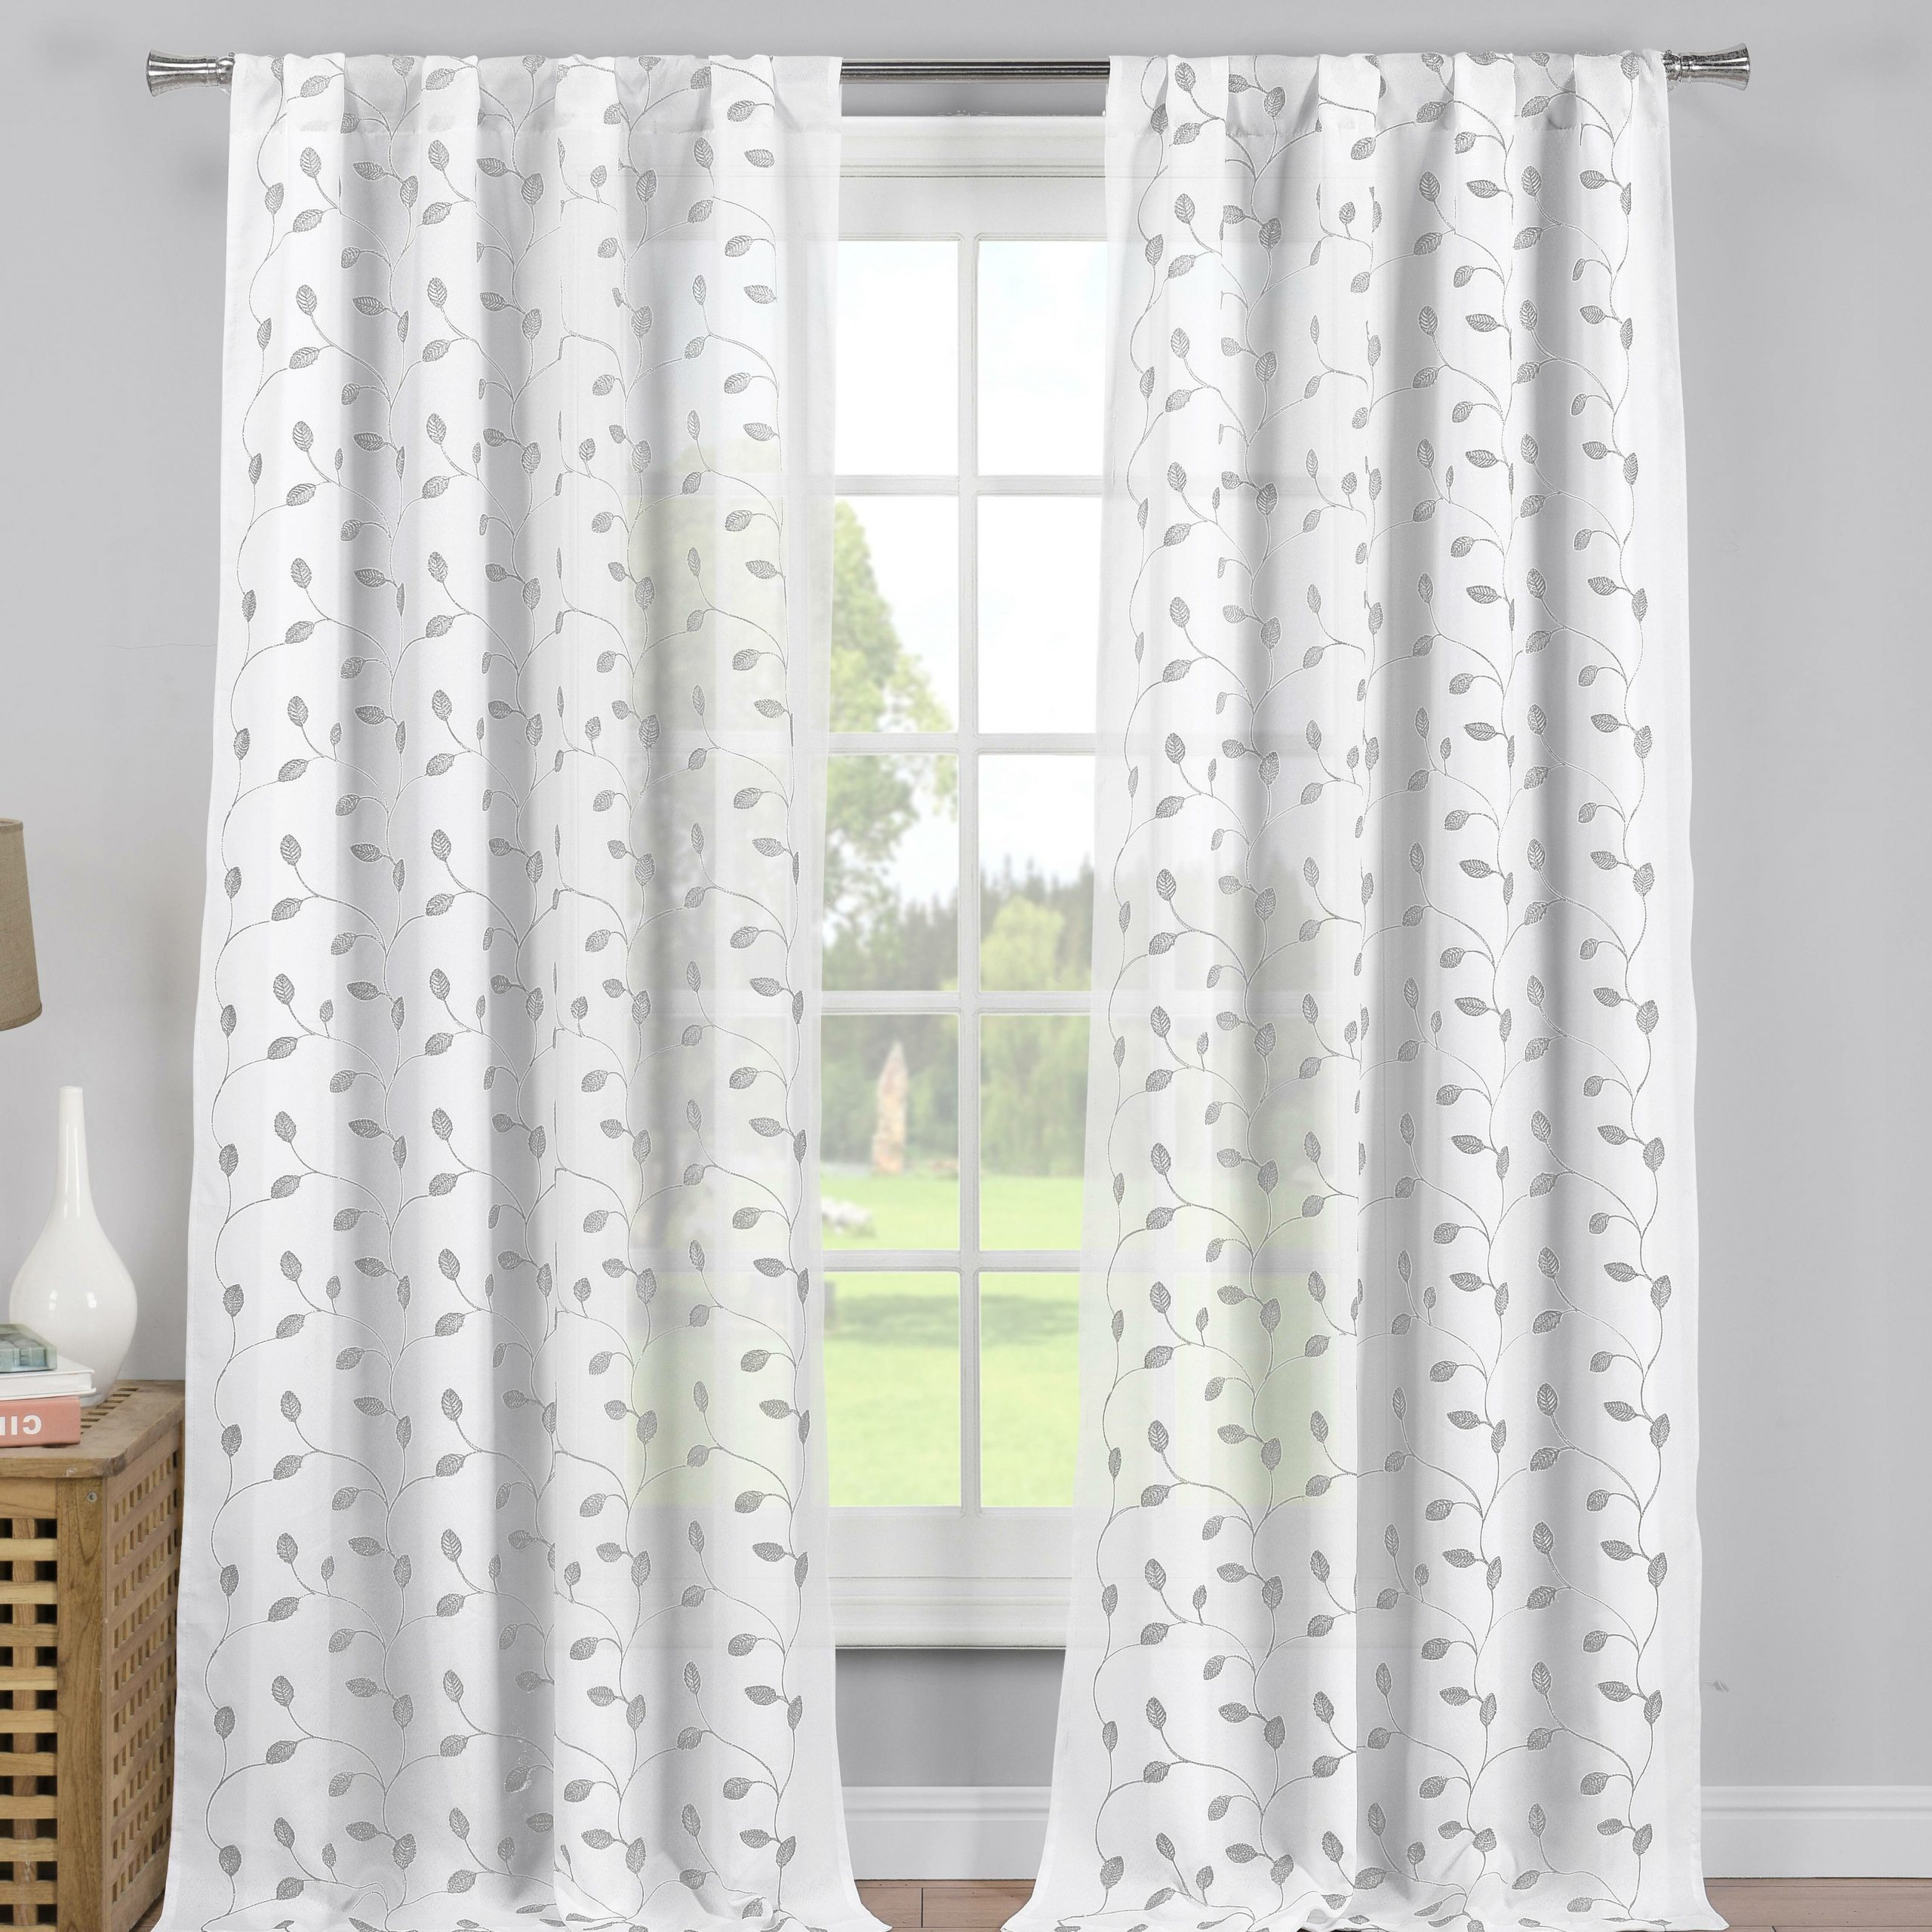 Overseas Leaf Swirl Embroidered Curtain Panel Pairs Within 2020 Whitehurst Embroidered Pole Top Floral / Flower Semi Sheer Rod Pocket  Curtain Panels (View 15 of 21)